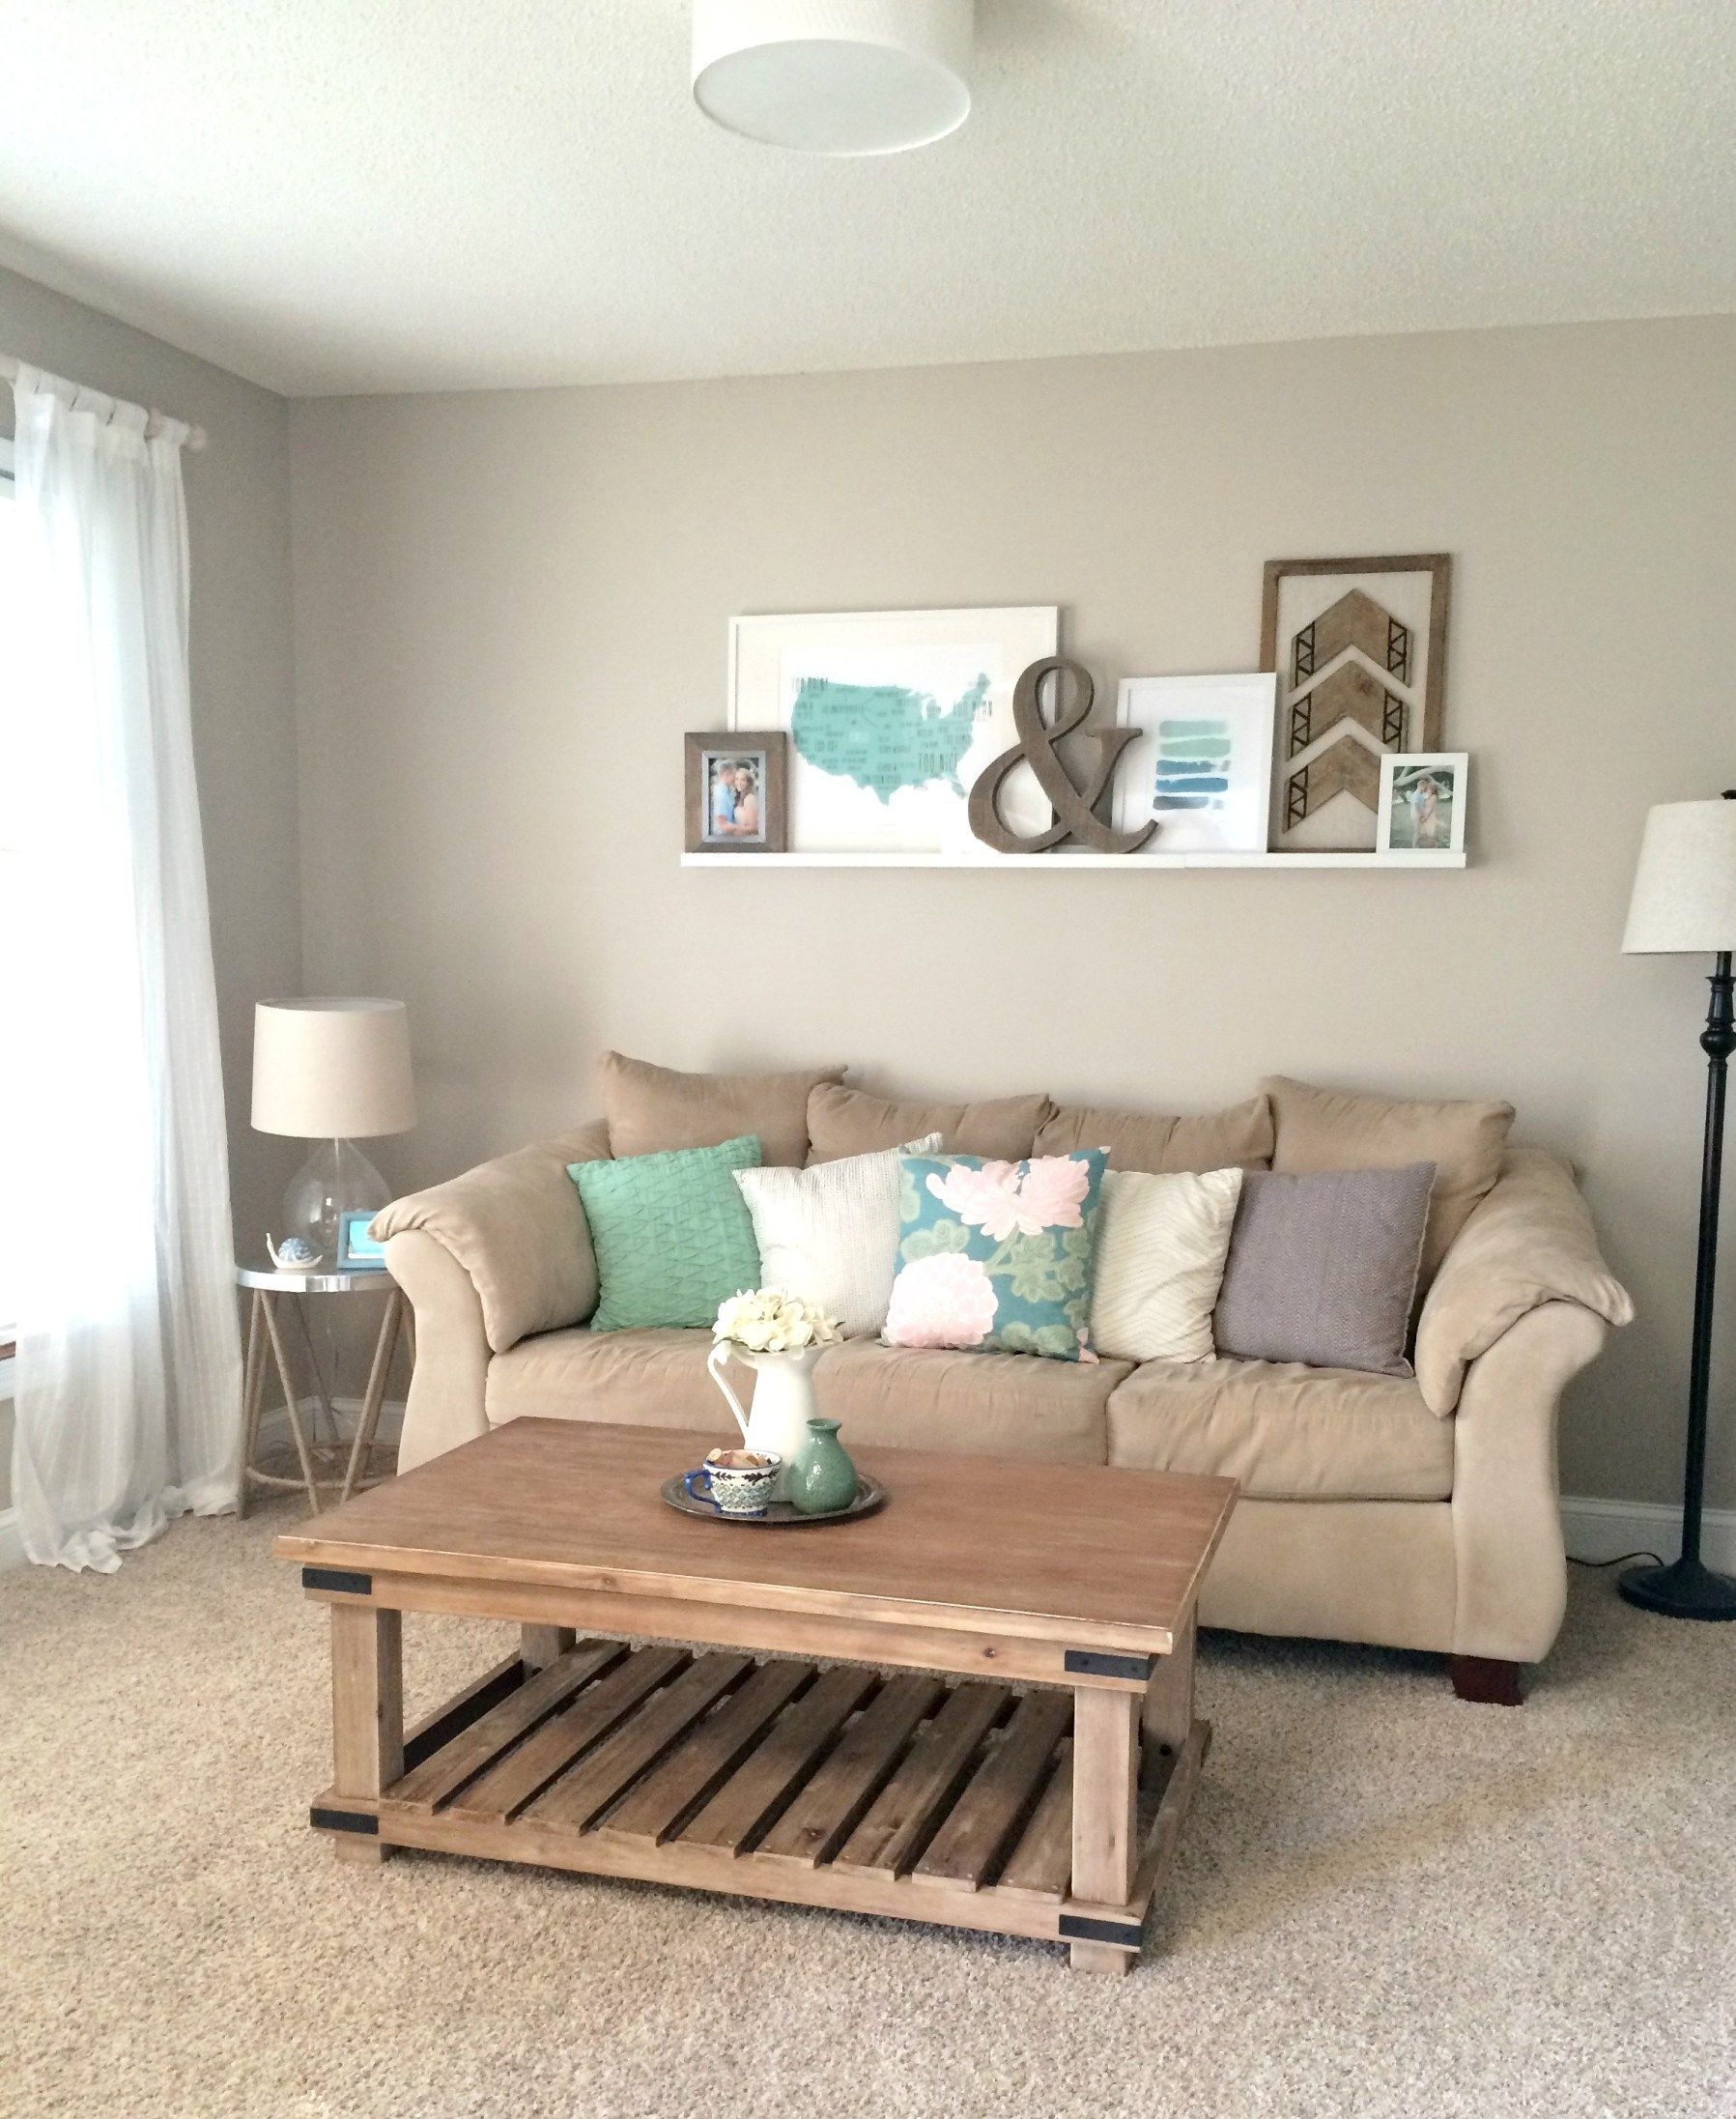 Front Room Reveal Full View Coastal Blues And Greens With Rustic Wood White Painted Hutch